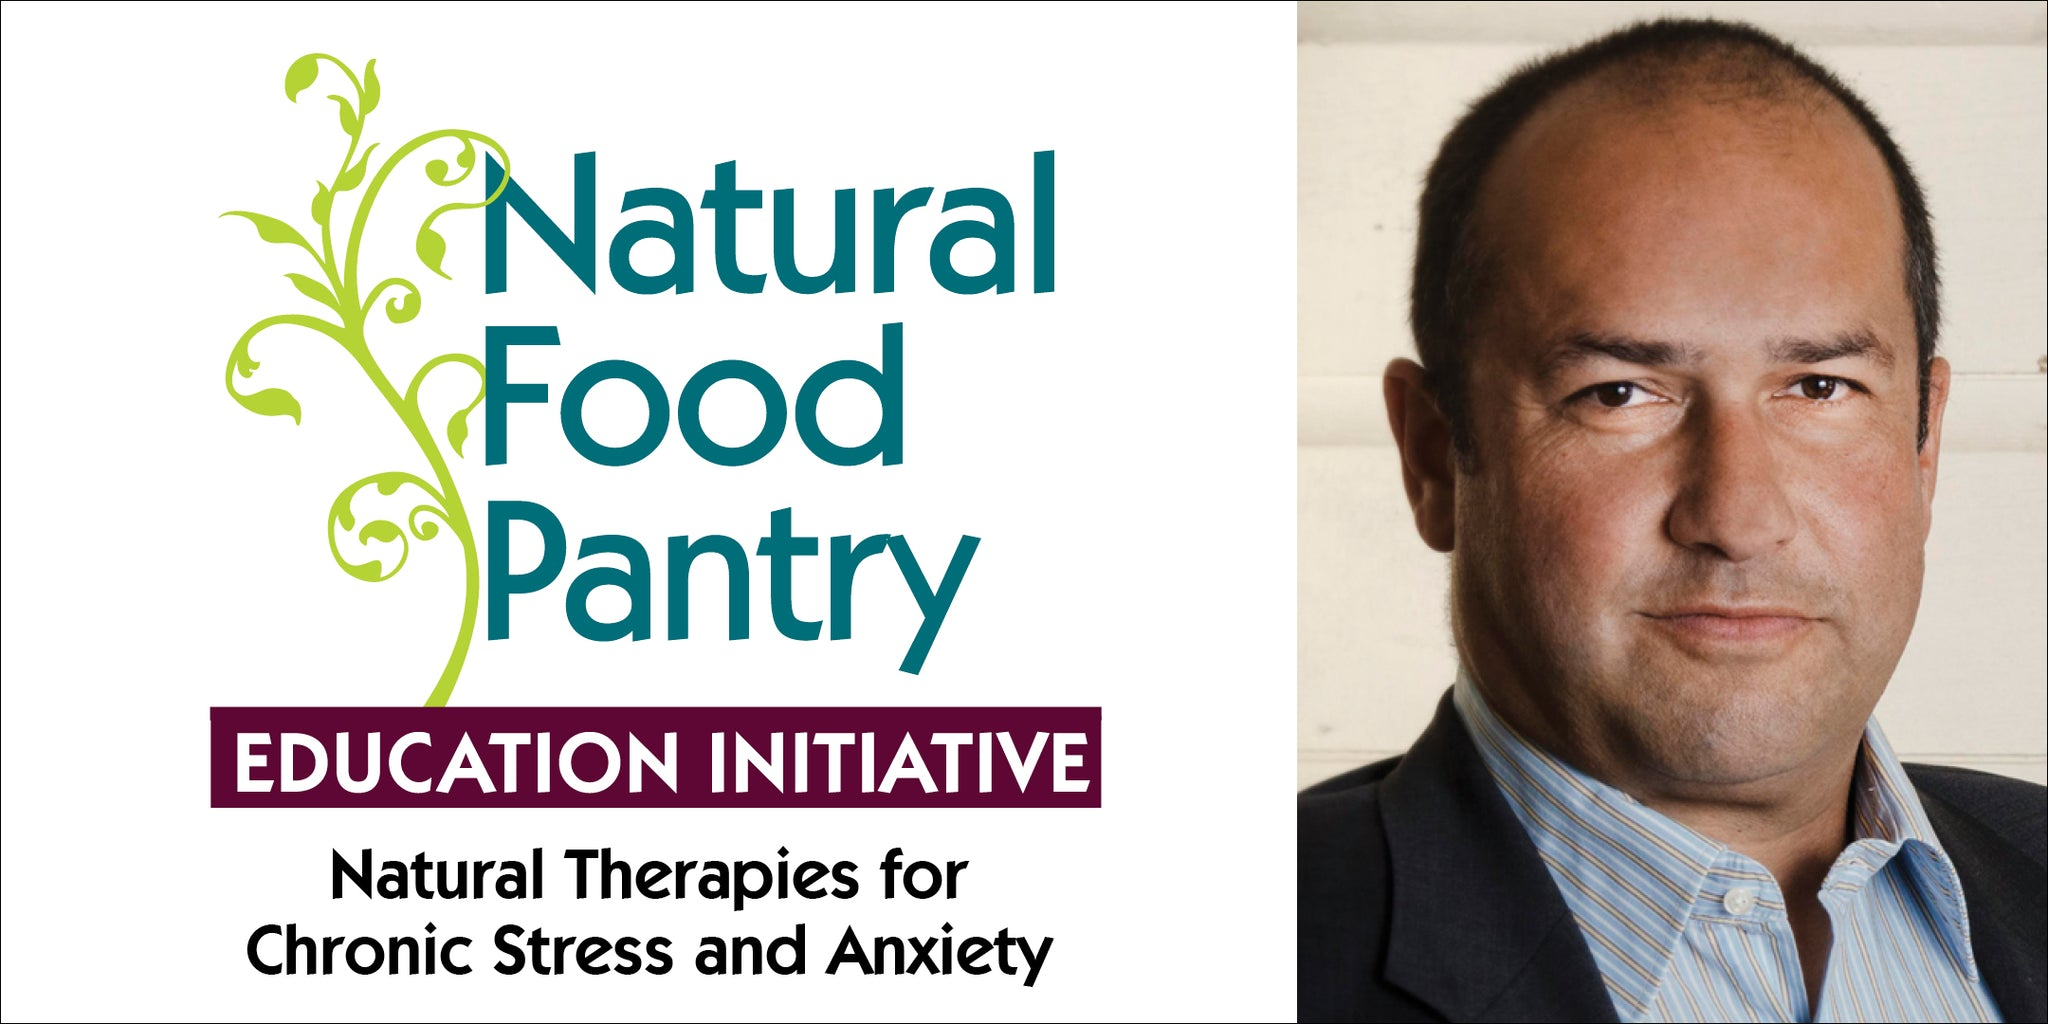 Nov 20: Natural Therapies for Chronic Stress and Anxiety